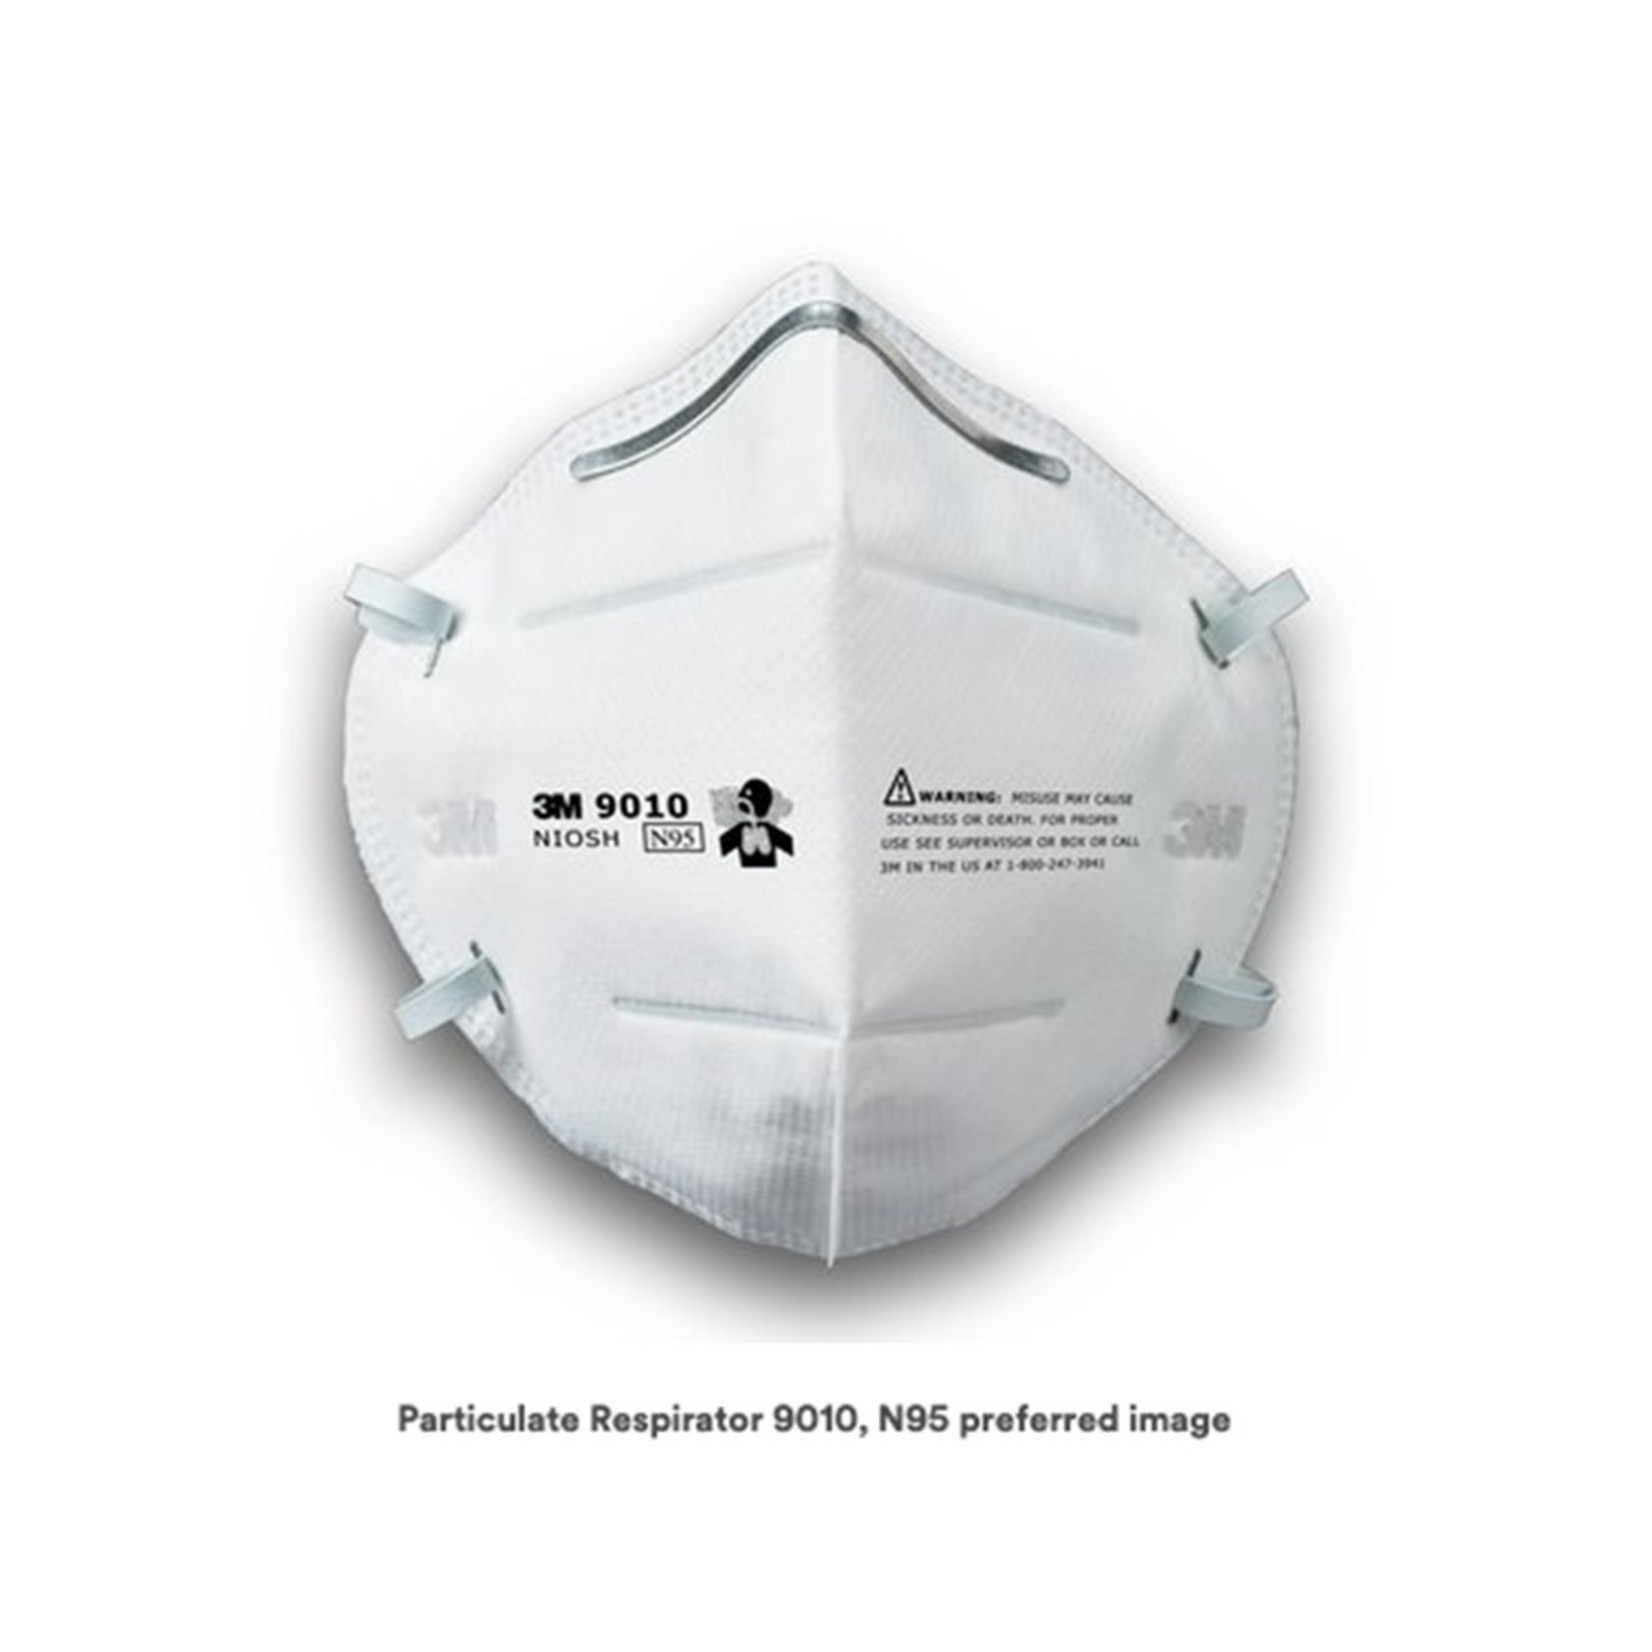 3M MASK, RESPIRATOR PARTICULATE N95